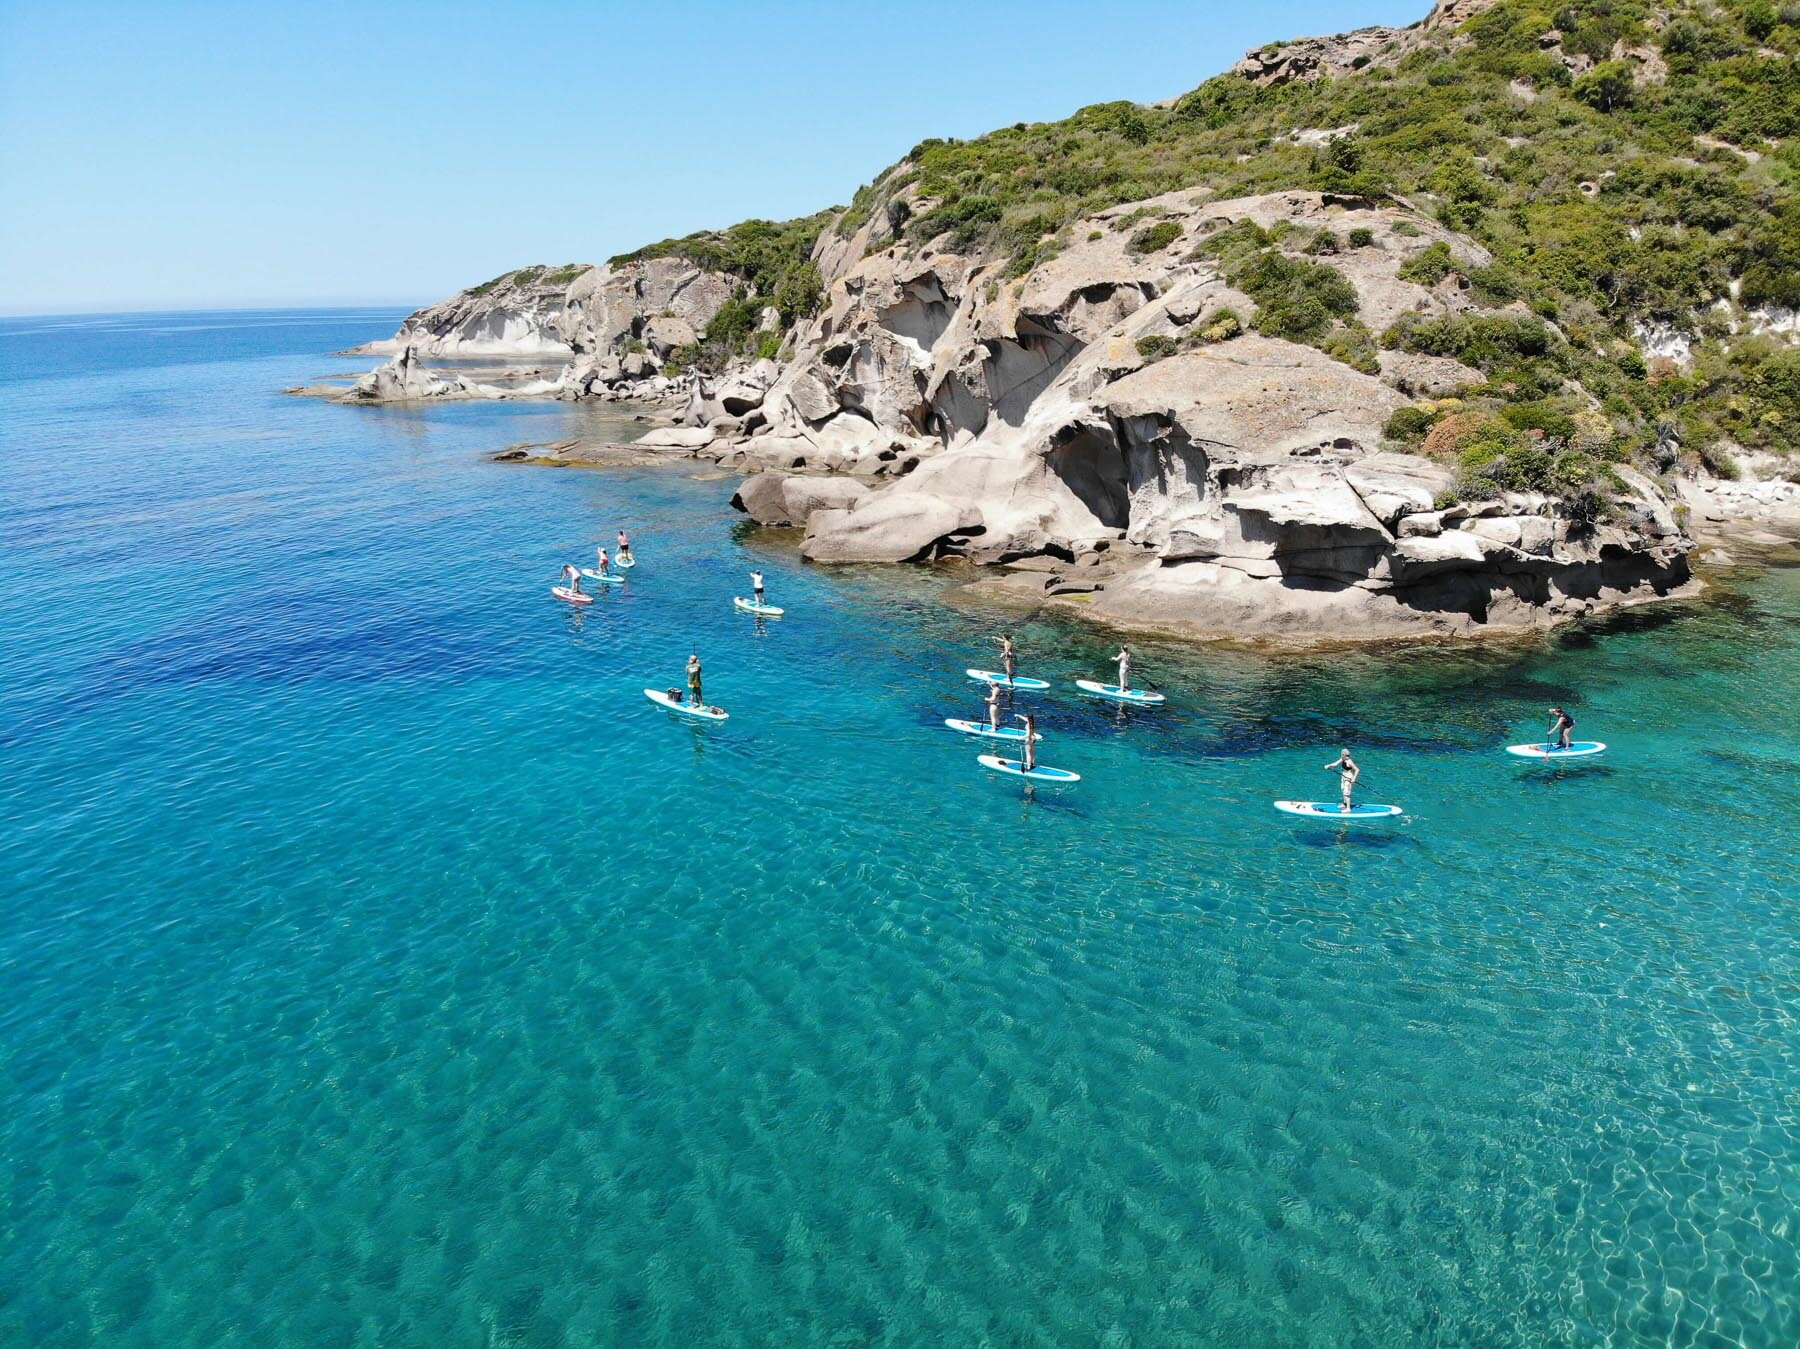 SARDINIA SUP AND YOGA - 22ND - 26TH OCTOBER | BOSA, WEST COAST SARDINIAOctober half term escape in the sunshineStandup paddleboard, daily yoga, hiking and via ferrataIndulge in great food, staying at 3 star hotel on the river